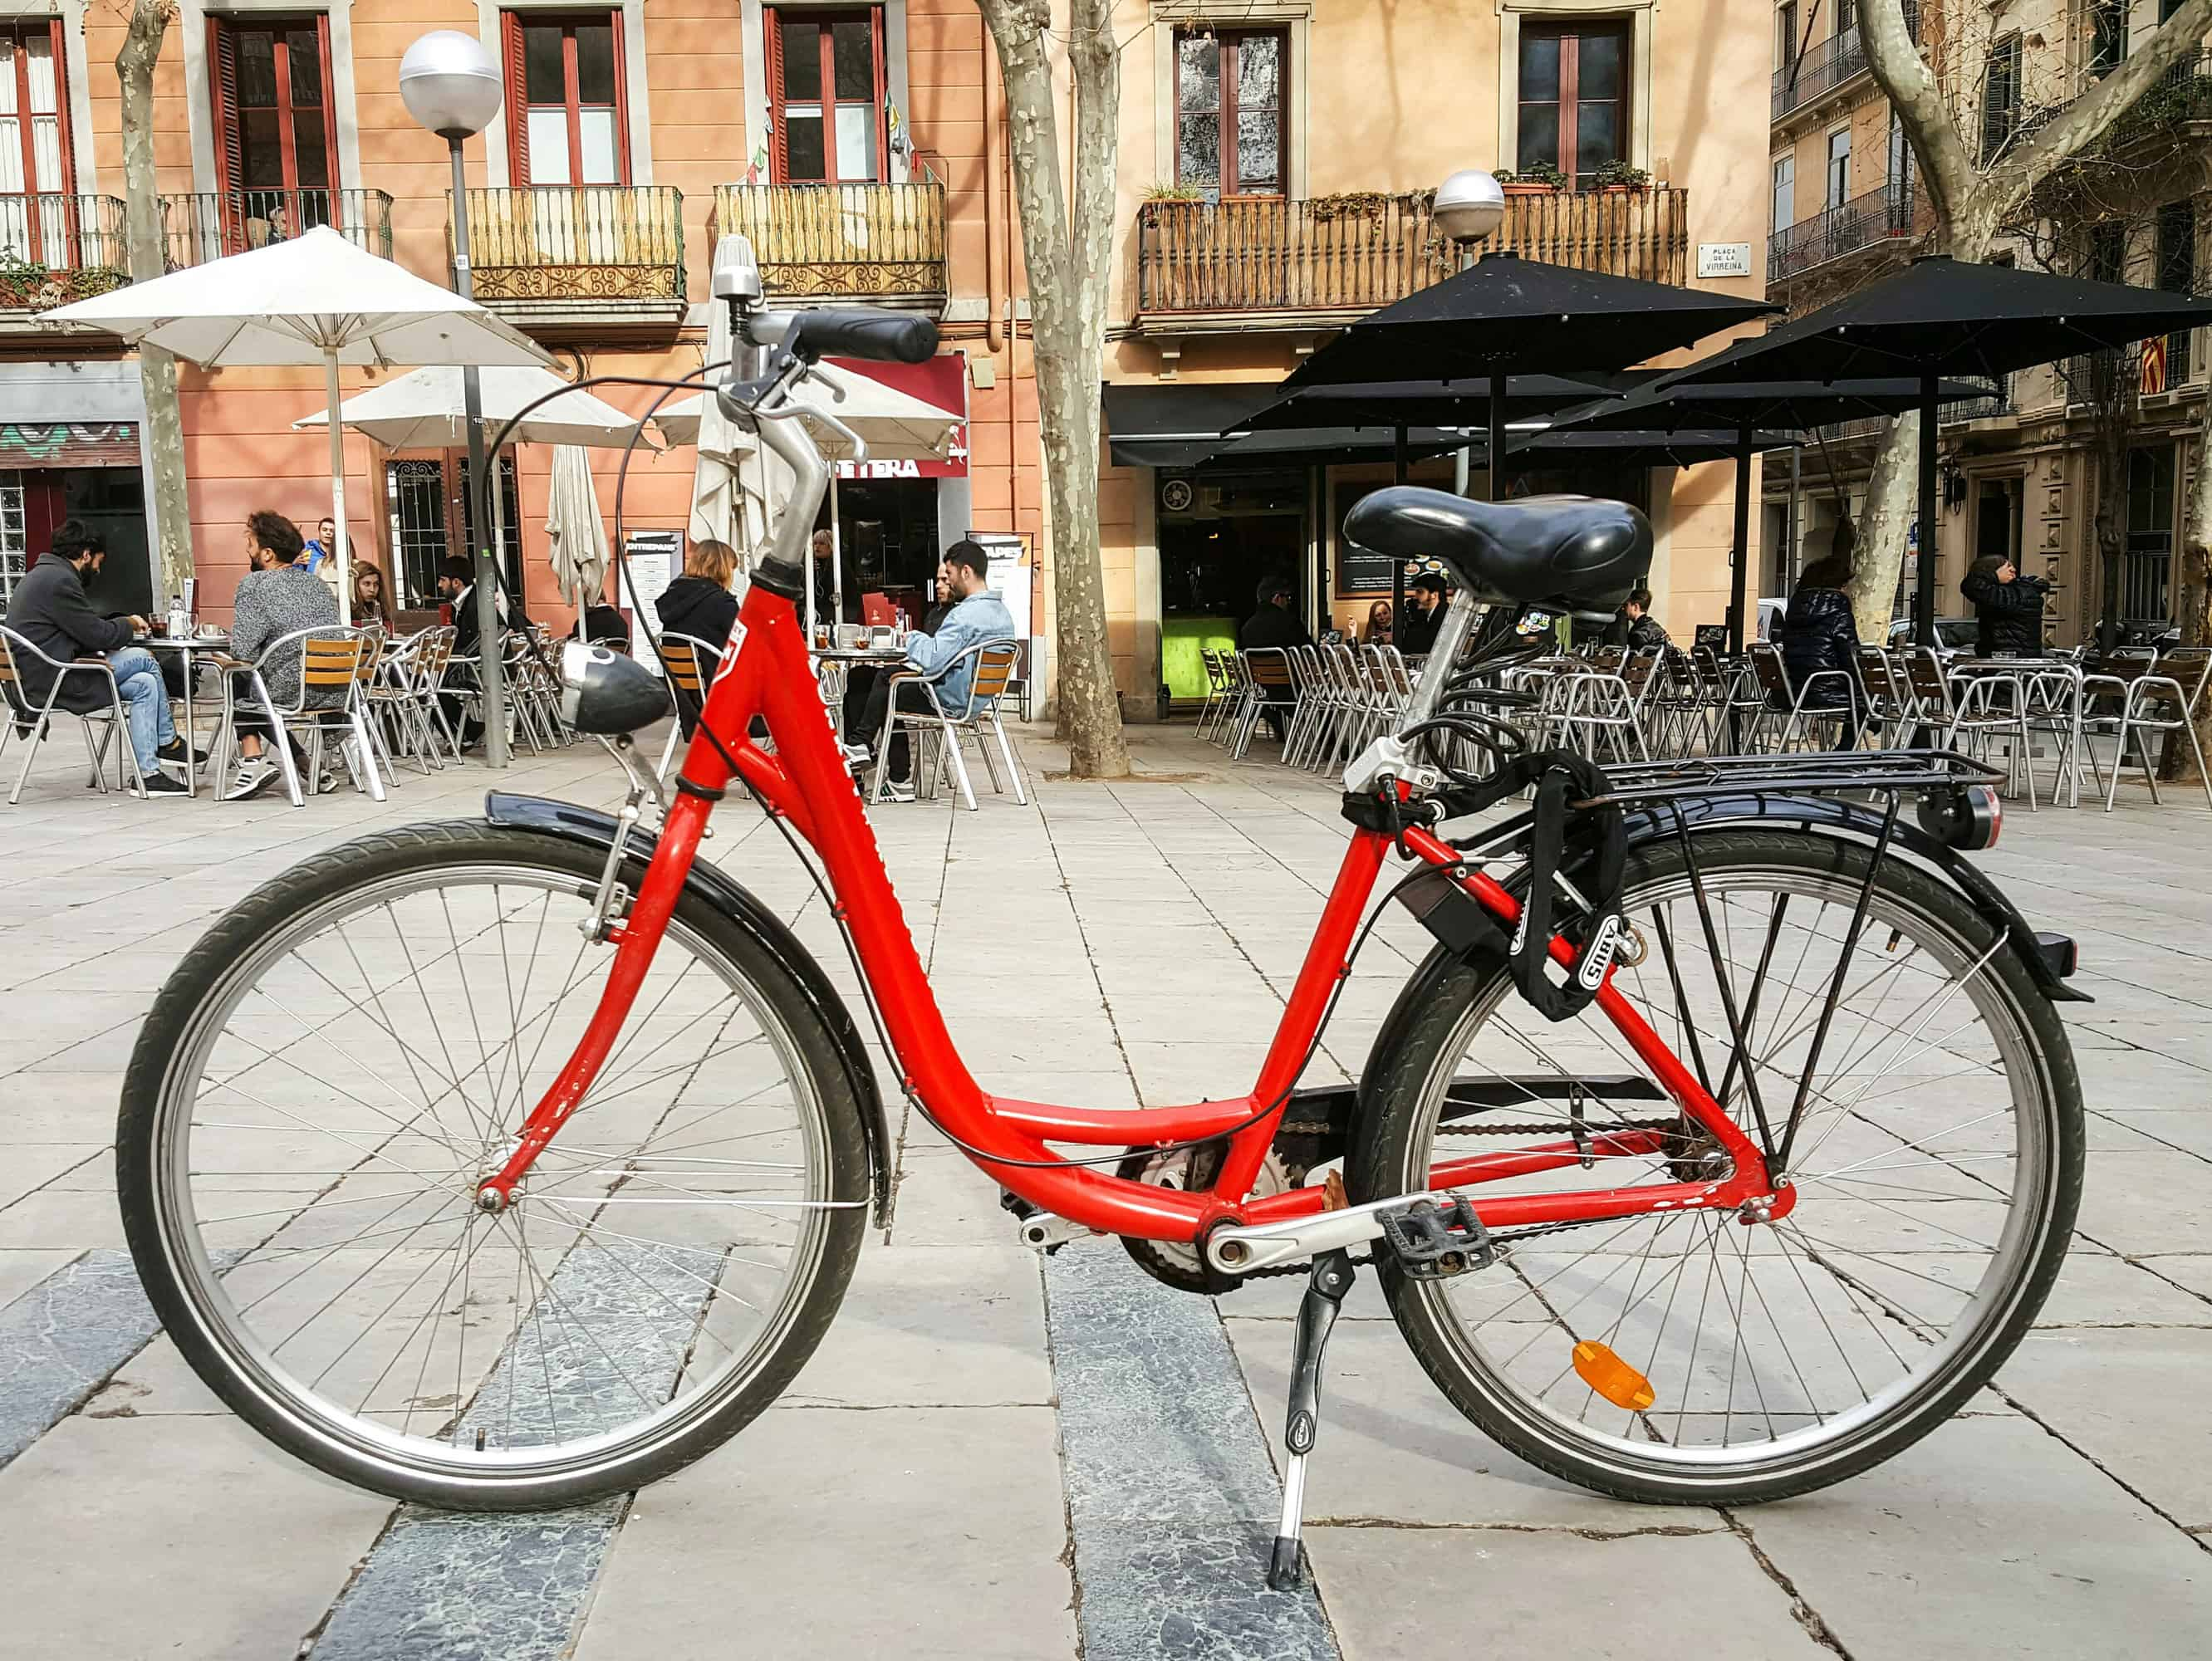 Barcelona barrios - A bike in Placa Virreina in Gracia